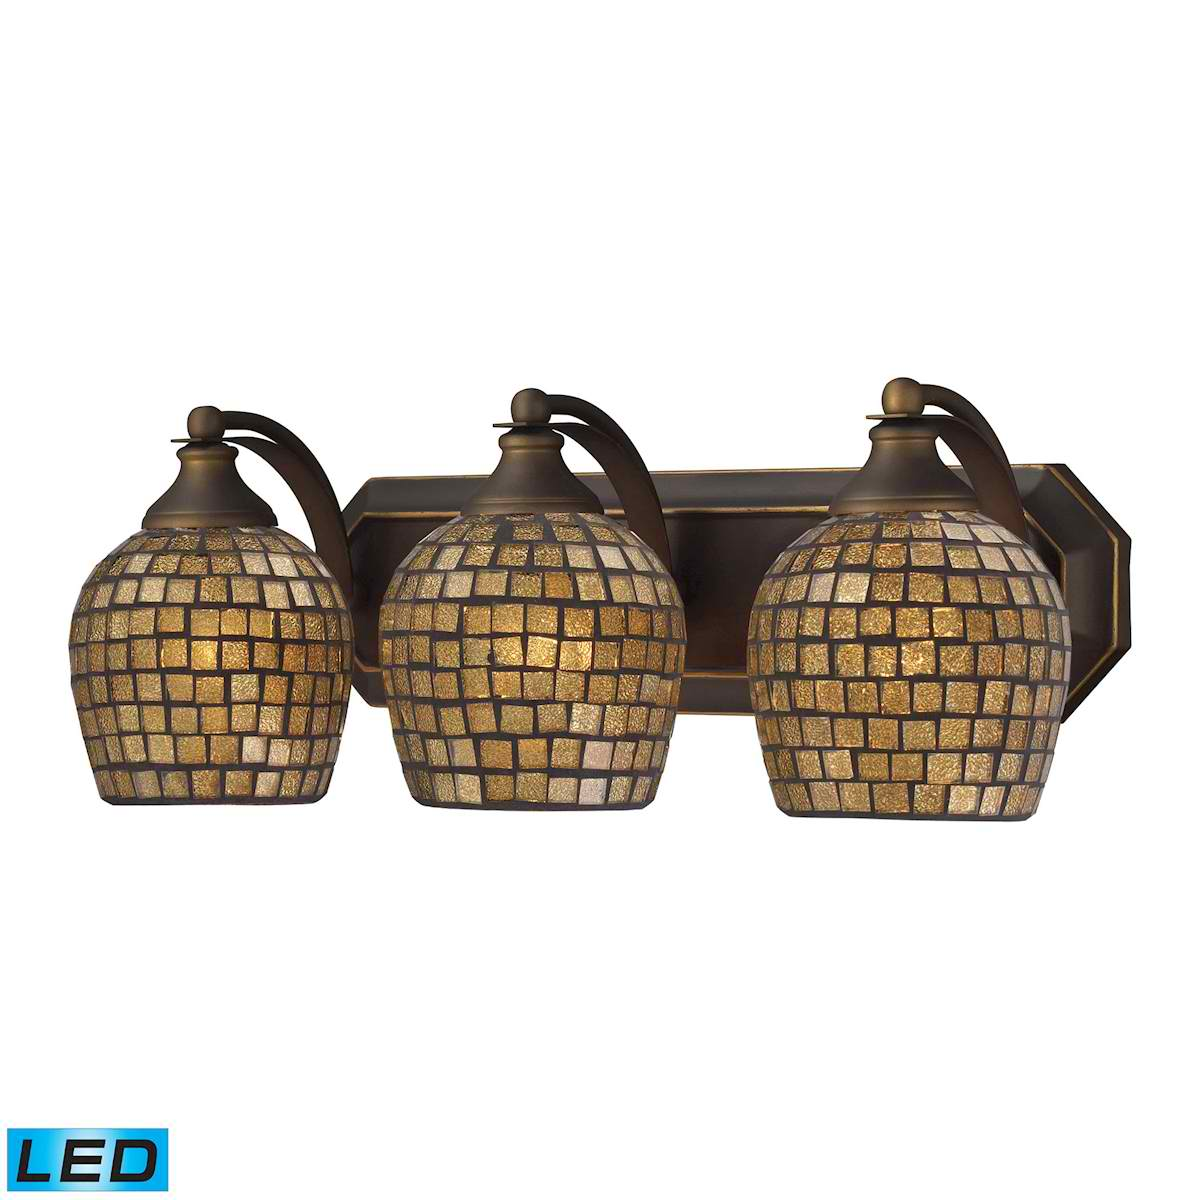 3 Light Vanity in Aged Bronze and Gold Mosaic Glass - LED, 800 Lumens (2400 Lumens Total) with Full Scale